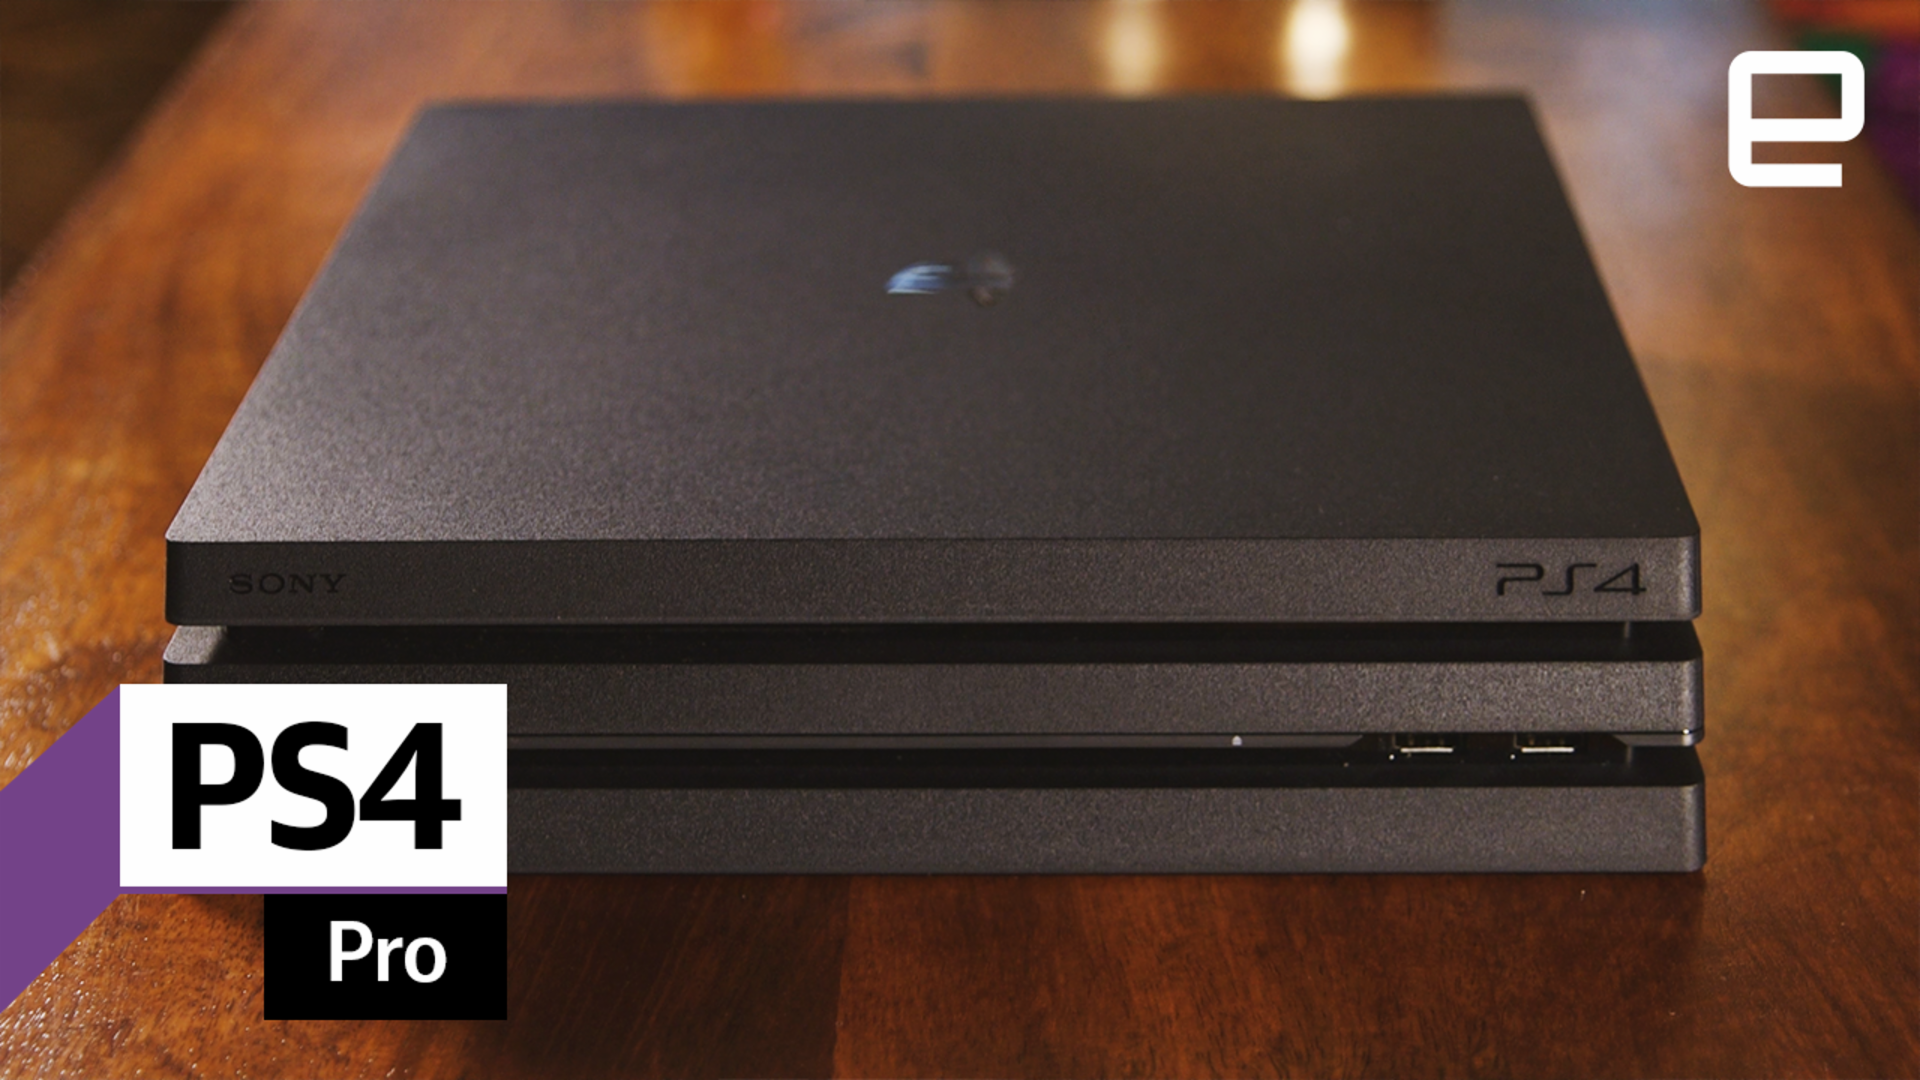 Sony's PlayStation 4 Pro is a perfect way to show off your 4K TV